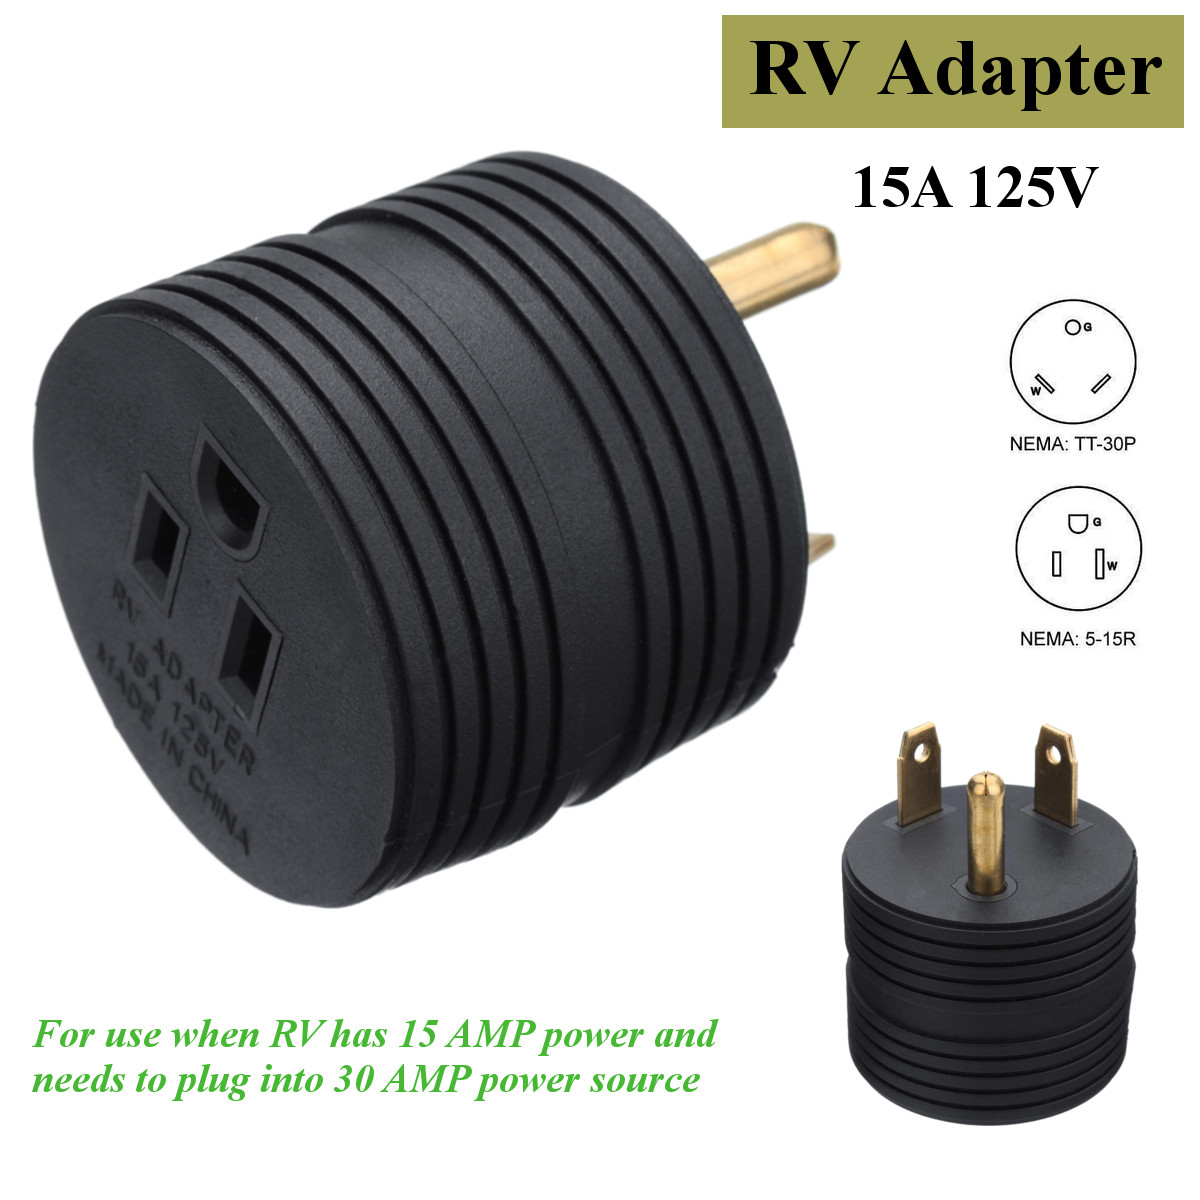 Kroak Rv Electrical Adapter Plug 30amp Male To 15amp Female For Cable Wiring A Motorhome Camper 125v In Cables Adapters Sockets From Automobiles Motorcycles On